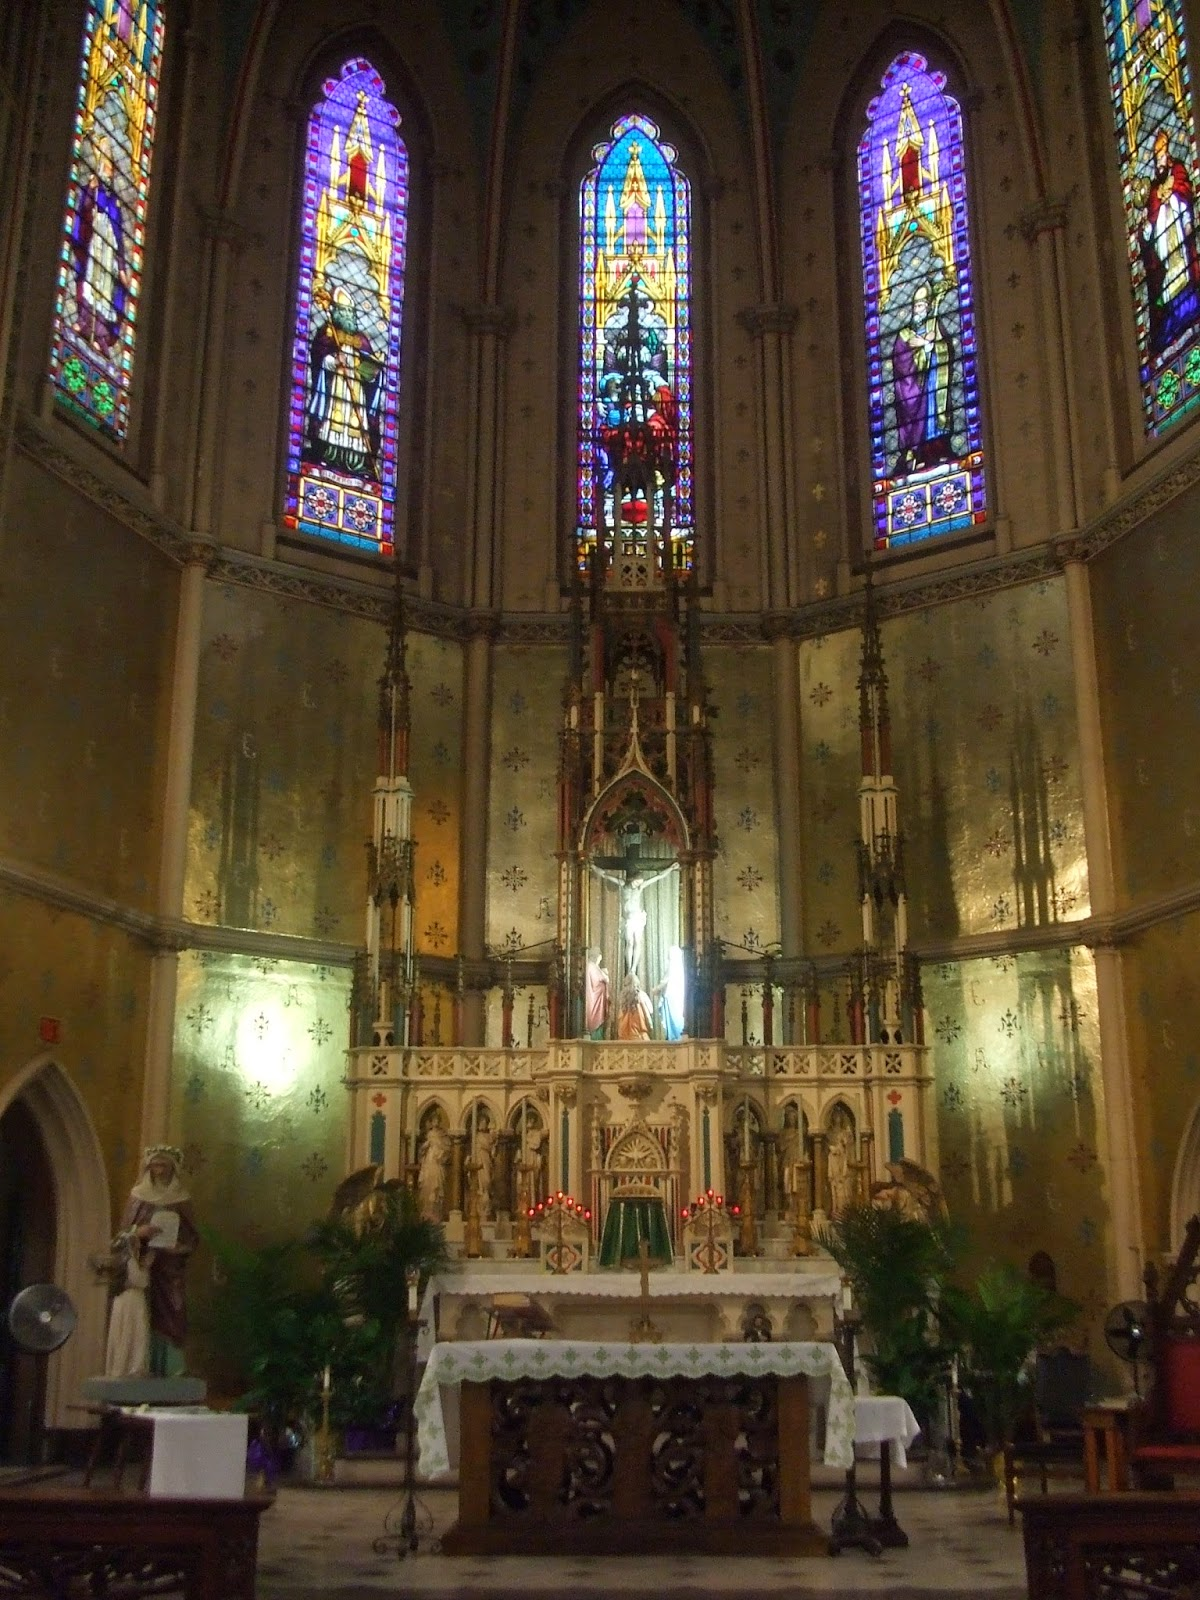 The altar at Ste. Anne's